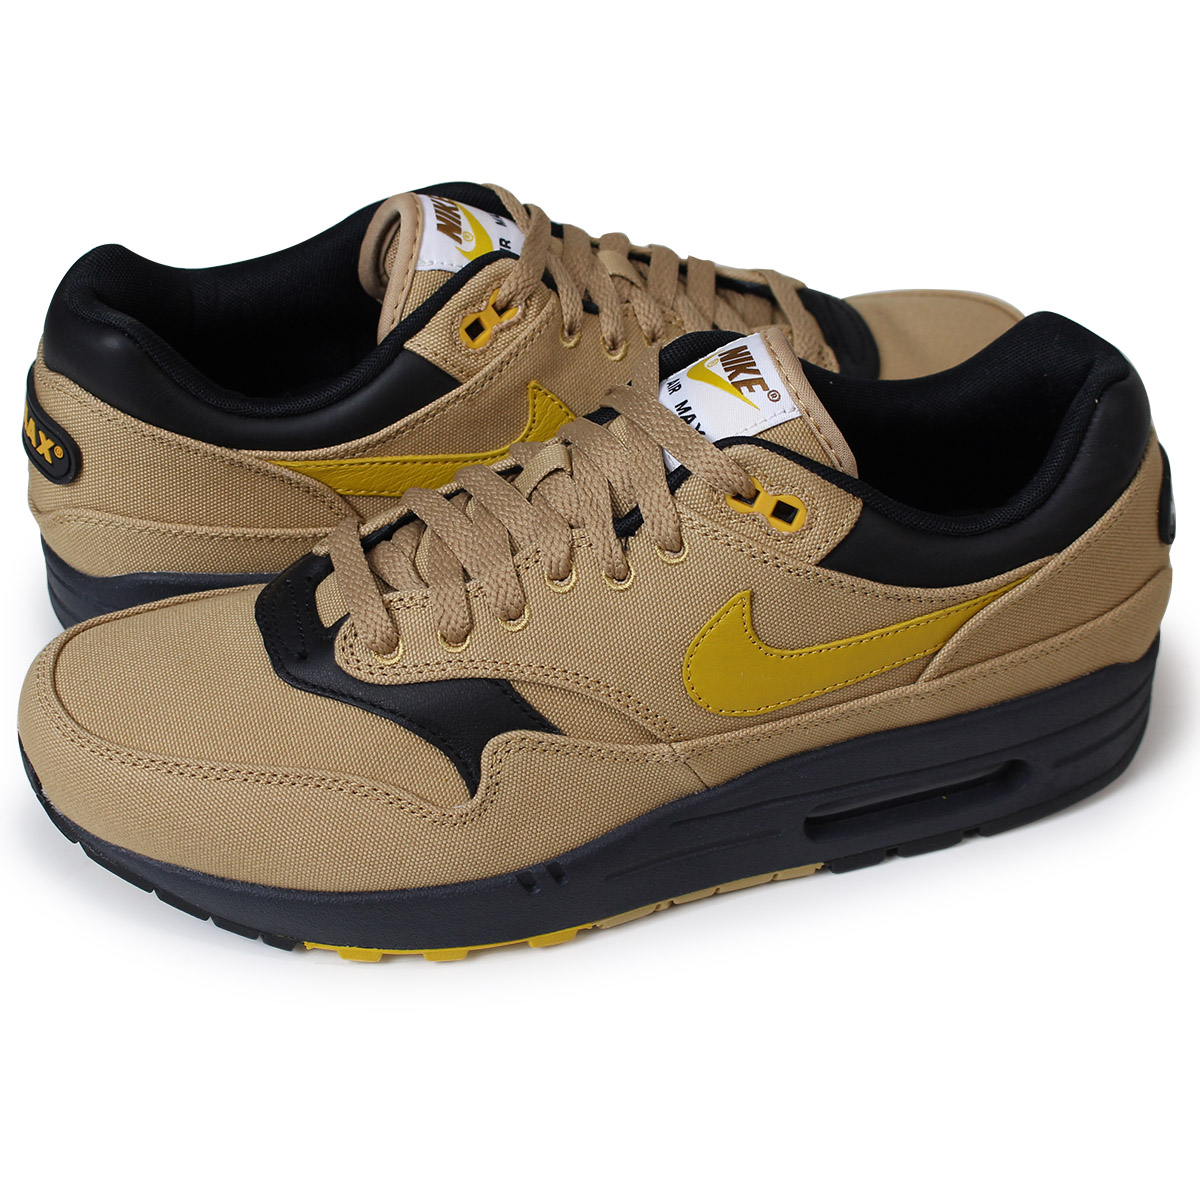 8ad7e0274c Whats up Sports: NIKE AIR MAX 1 PREMIUM Kie Ney AMAX 1 premium sneakers men  875,844-700 beige [load planned Shinnyu load in reservation product 5/18 ...